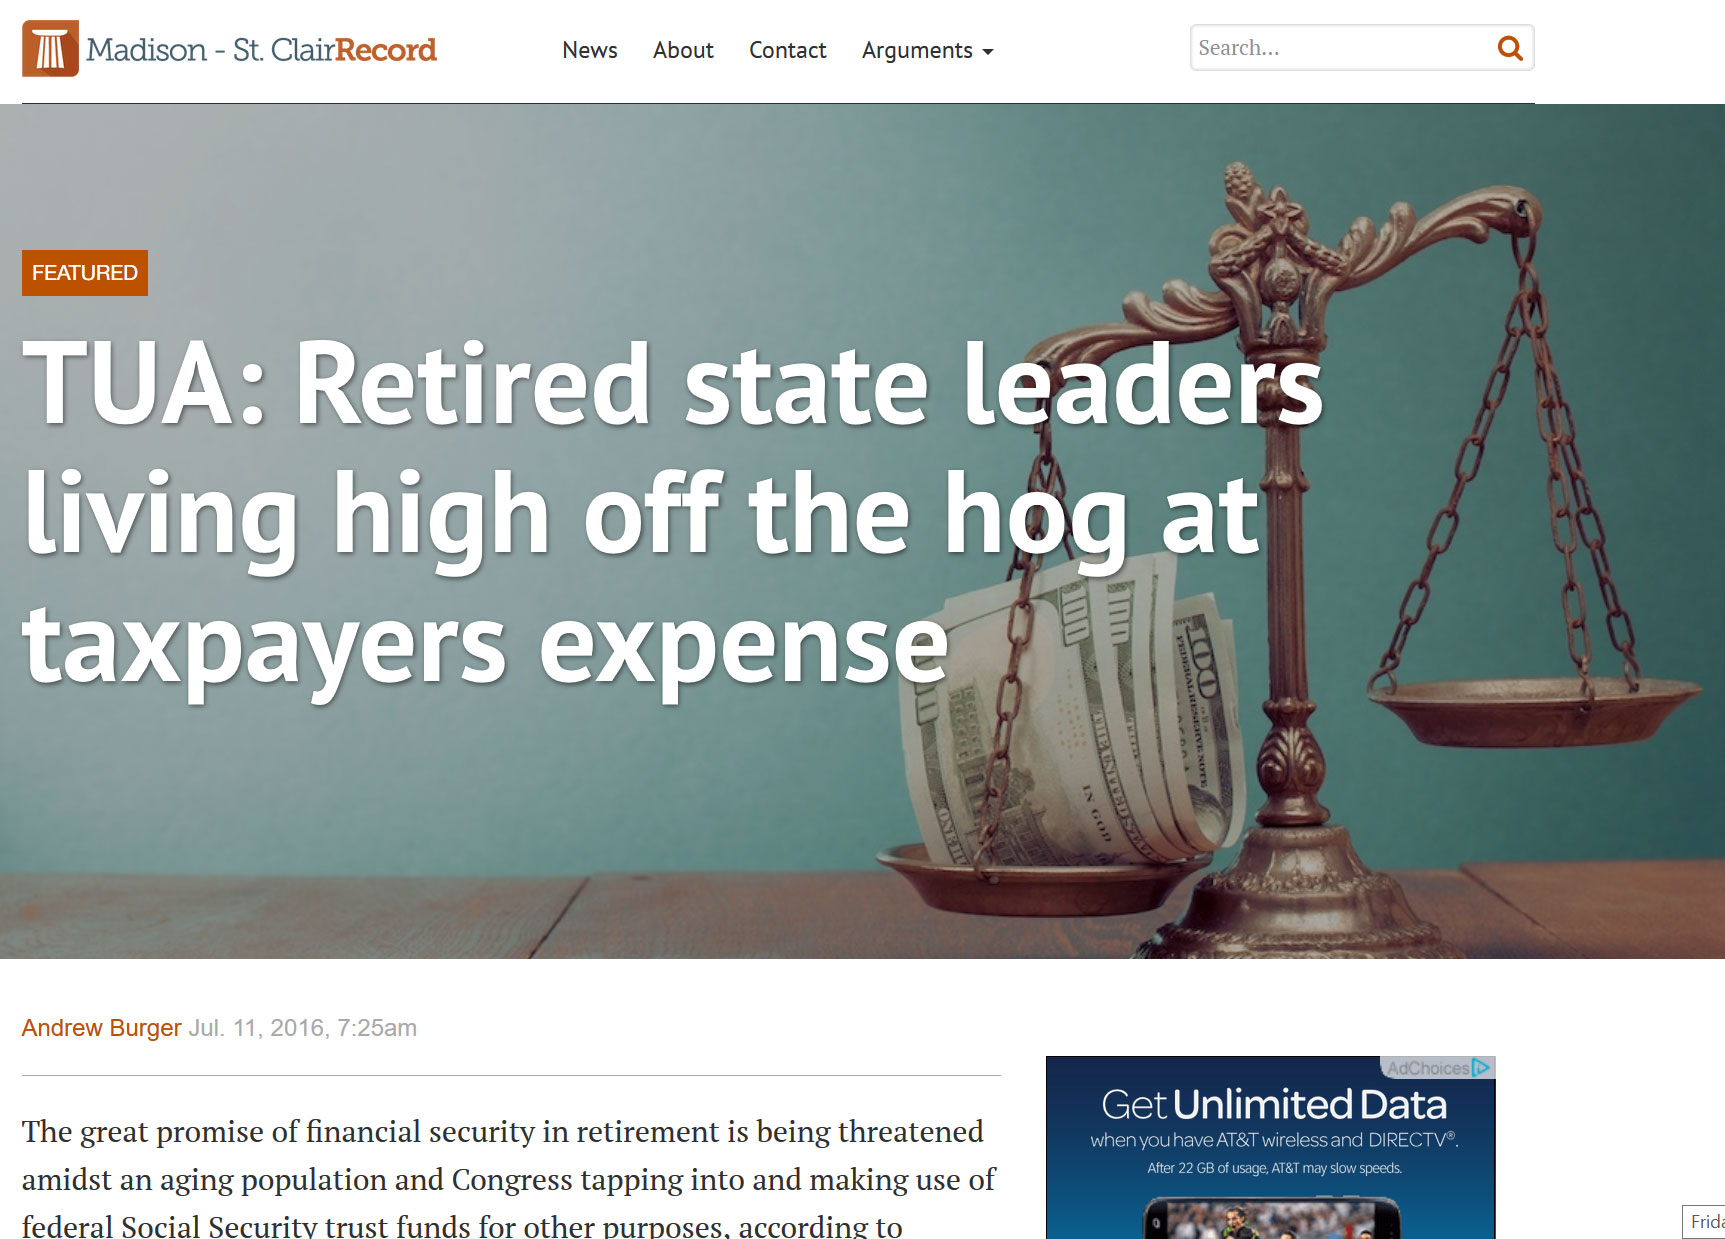 Madison Record|TUA: Retired state leaders living high off the hog at taxpayers expense